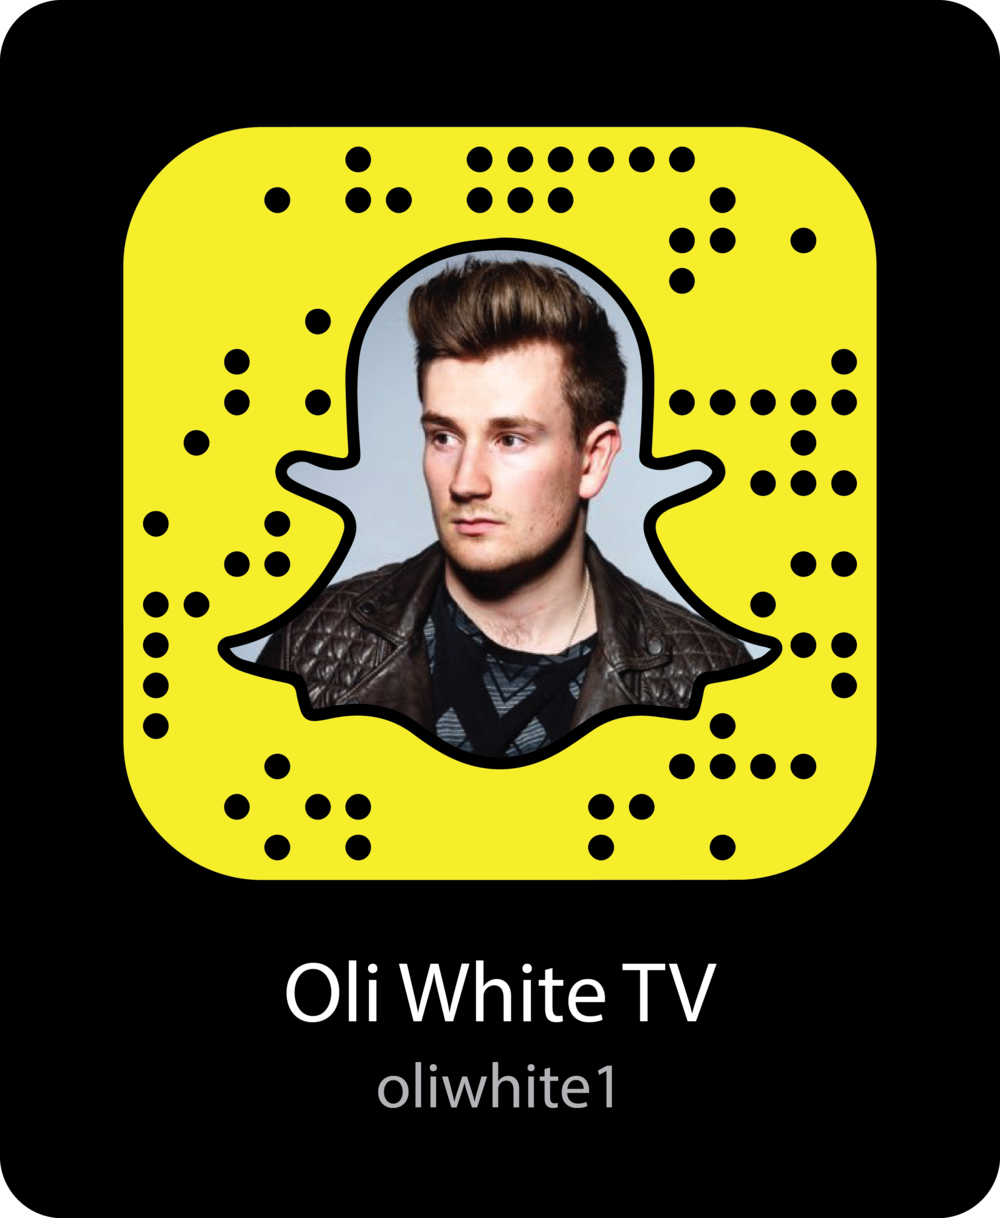 oli-white-tv-youtube-celebrity-snapchat-snapcode